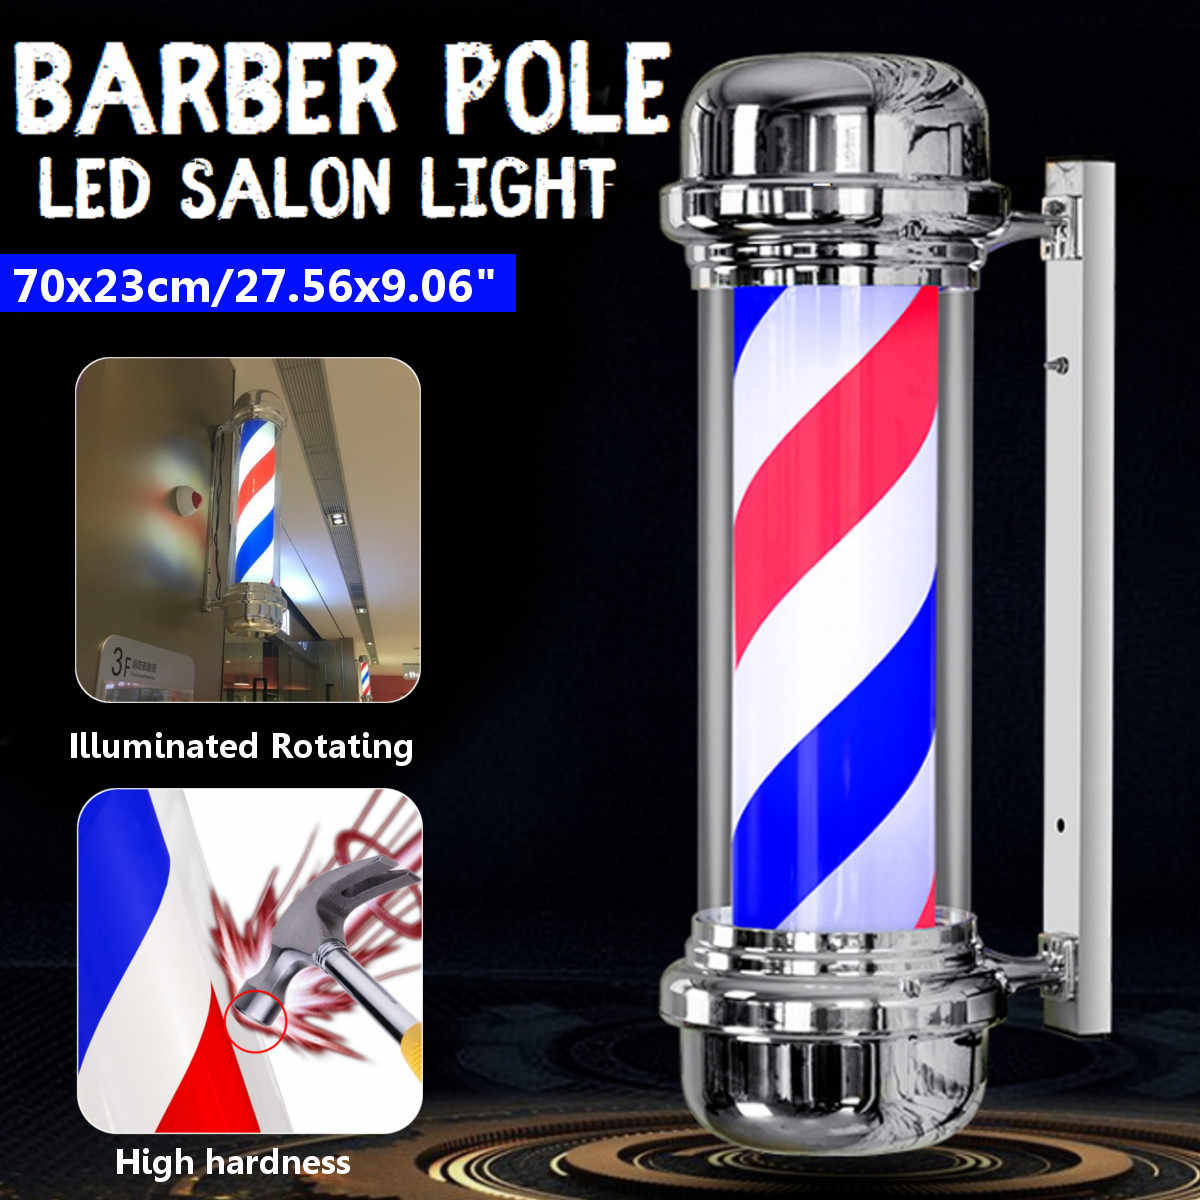 110V/220V LED Barber Shop Sign Pole Light Red White Blue Stripe Design Roating Salon Wall Hanging Light Lamp Beauty Salon Lamp